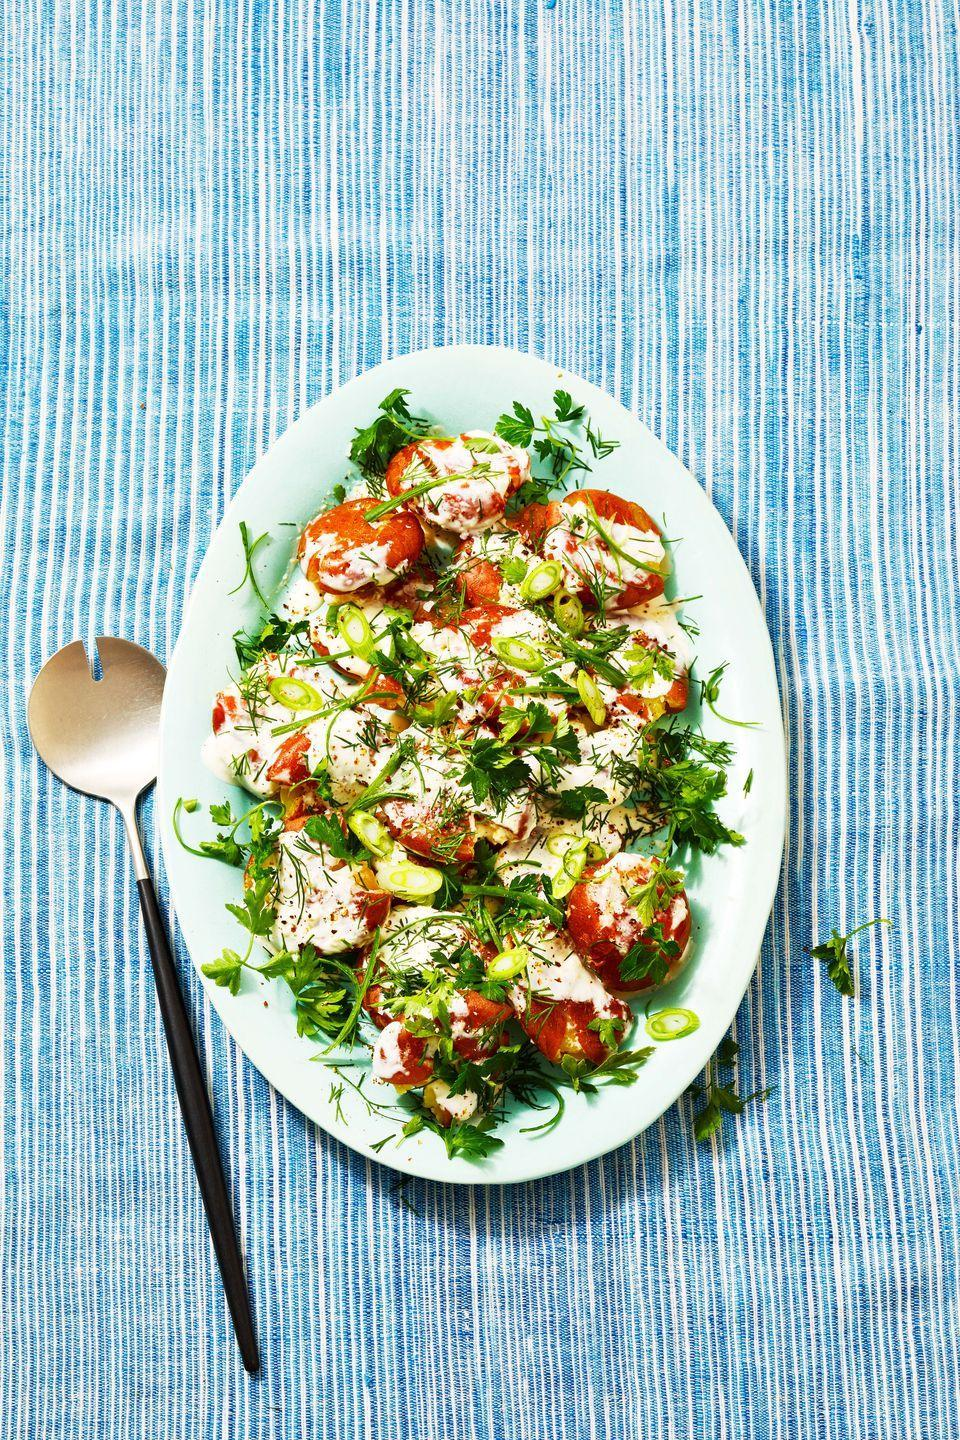 """<p>Bring this dreamy, creamy red potato salad to your next summer party and it might just outshine the main <a href=""""https://www.goodhousekeeping.com/food-recipes/g413/great-grilling-recipes/"""" rel=""""nofollow noopener"""" target=""""_blank"""" data-ylk=""""slk:grilling recipes"""" class=""""link rapid-noclick-resp"""">grilling recipes</a> on the table. </p><p><em><a href=""""https://www.goodhousekeeping.com/food-recipes/a36701641/red-potato-salad-recipe/"""" rel=""""nofollow noopener"""" target=""""_blank"""" data-ylk=""""slk:Get the recipe for Herby Red Potato Salad »"""" class=""""link rapid-noclick-resp"""">Get the recipe for Herby Red Potato Salad »</a></em></p>"""